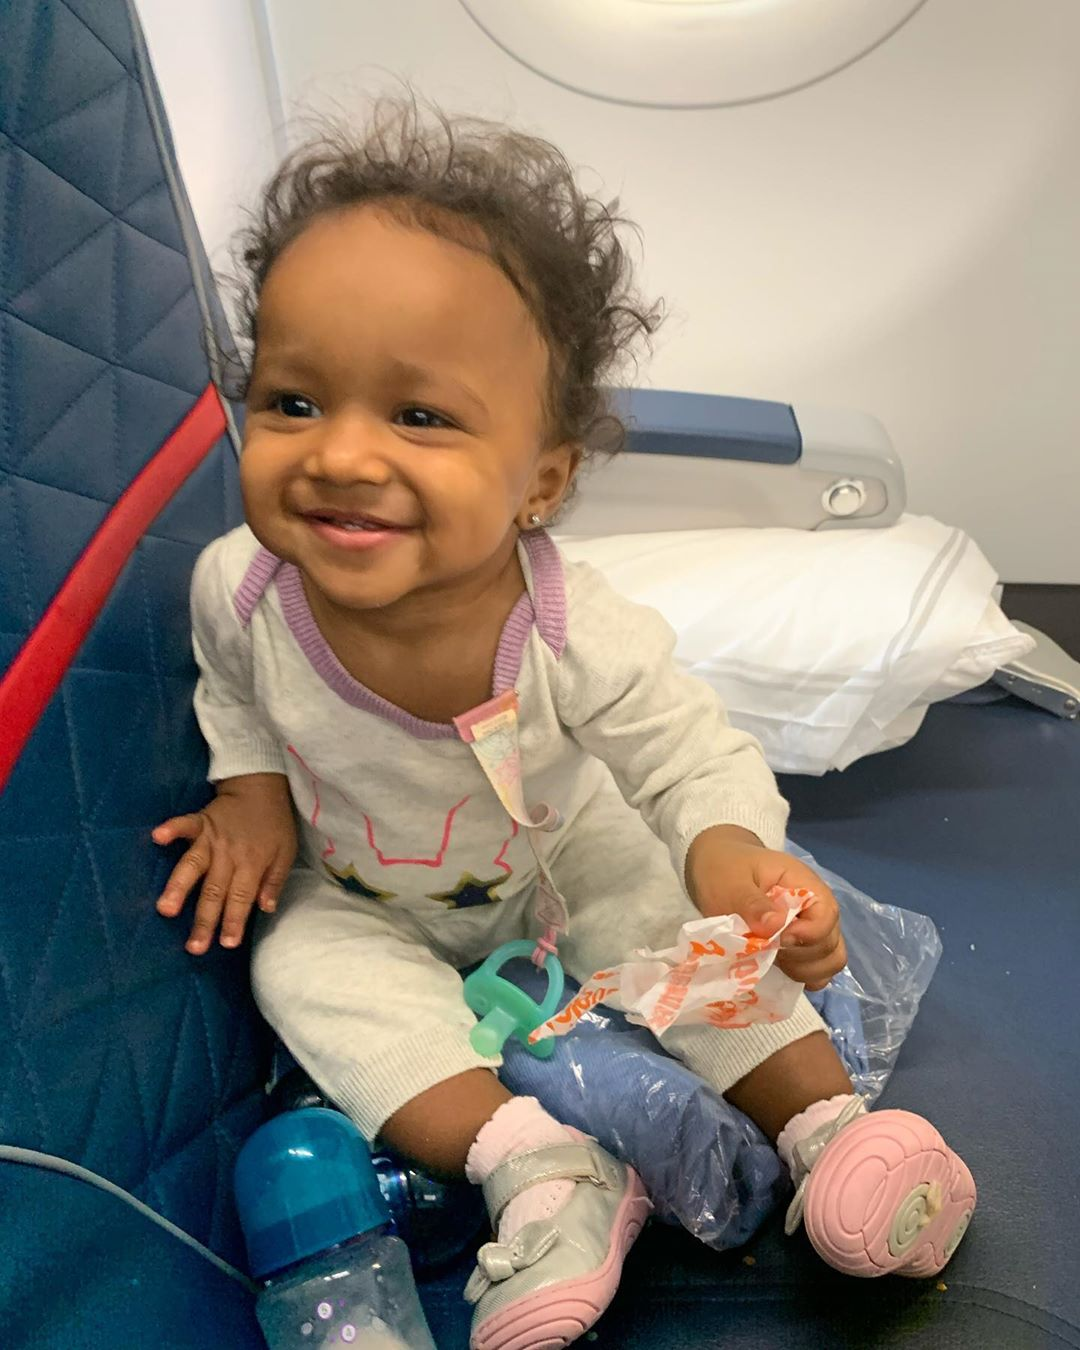 Kenya Moore Publicly Flaunts Her Unconditional Love For Baby Brooklyn Daly For Her Birthday – See The Sweet Photo